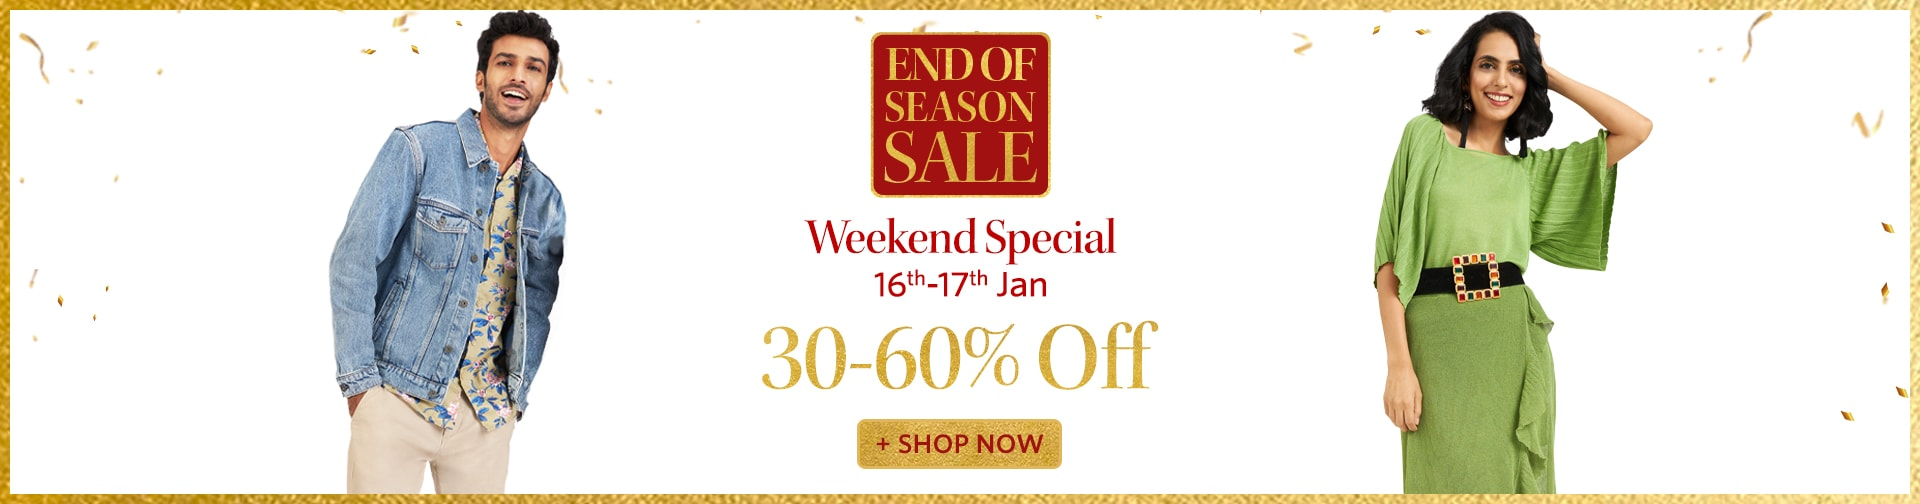 myntra.com - Up To 60% Discount on all products